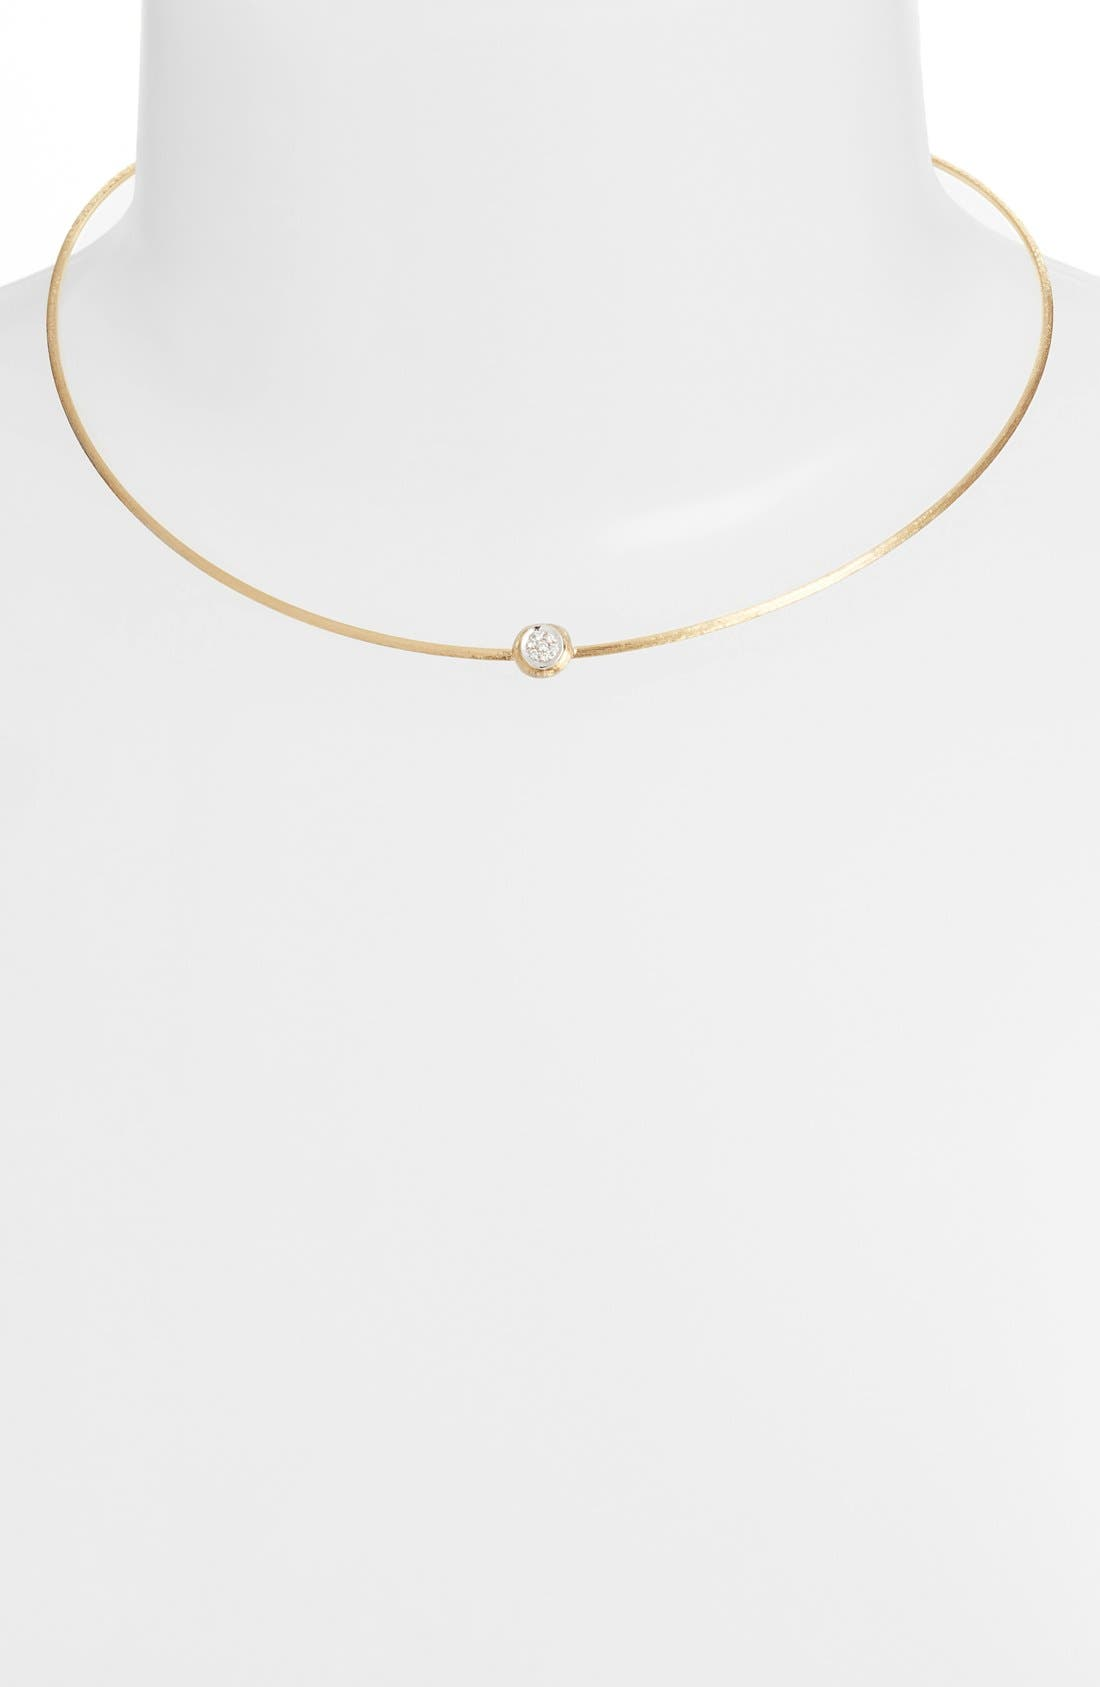 Diamond Collar Necklace,                             Alternate thumbnail 2, color,                             Yellow Gold